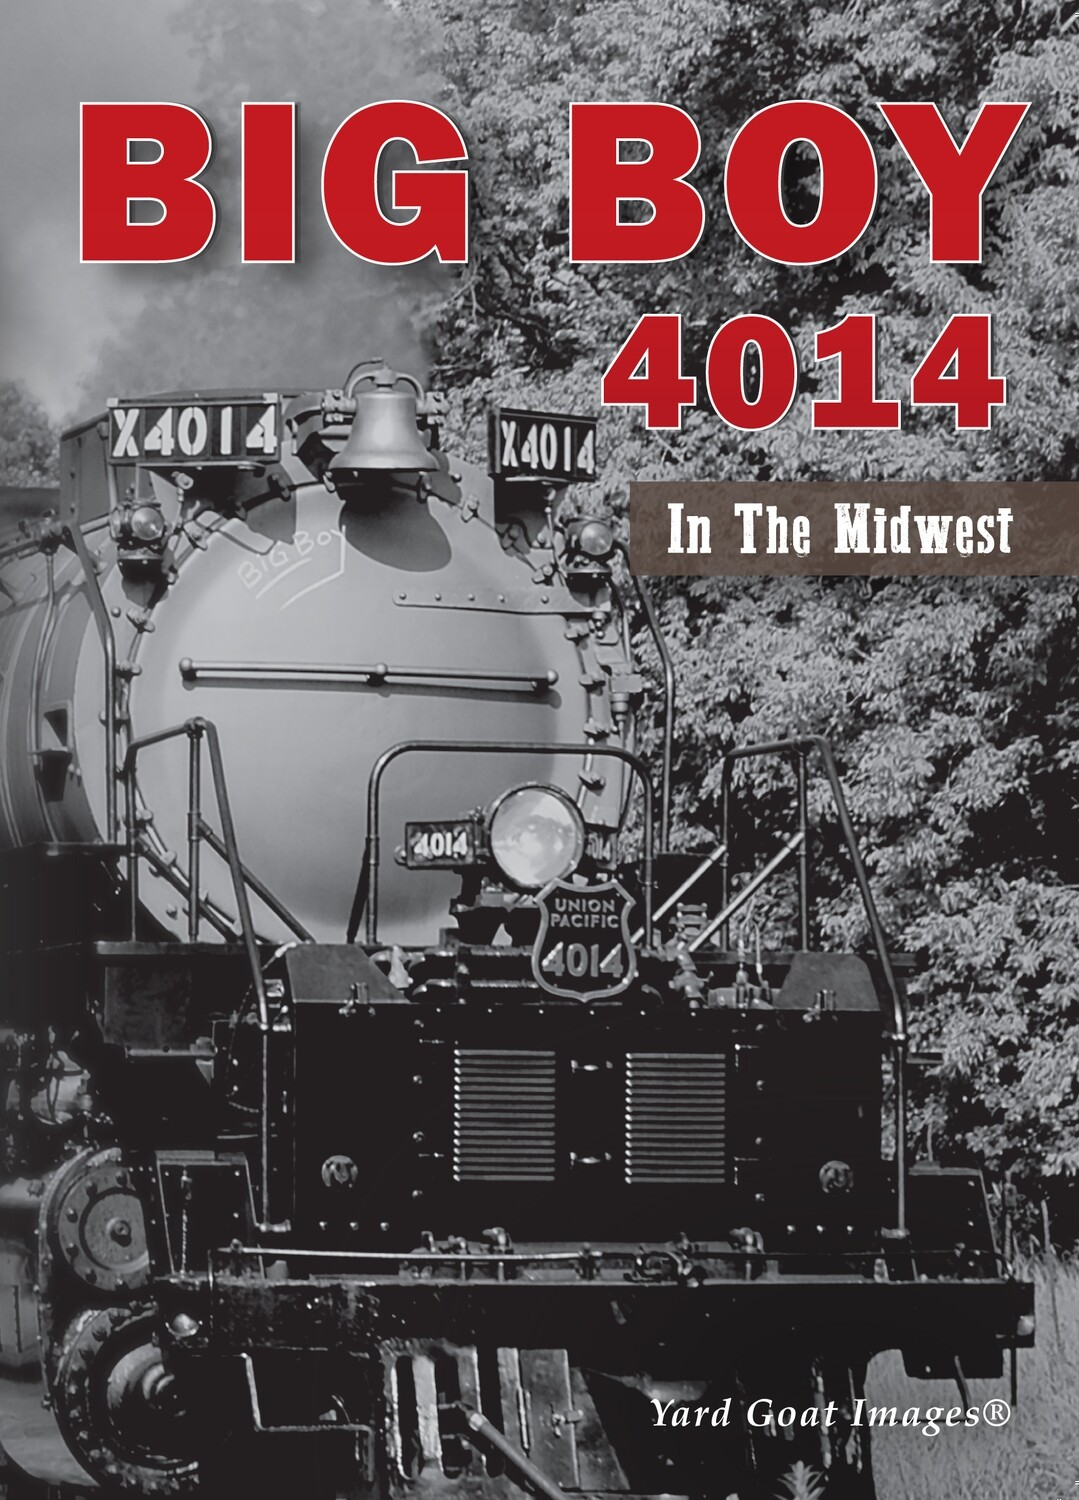 Big Boy 4014 In The Midwest **COMING SOON!**